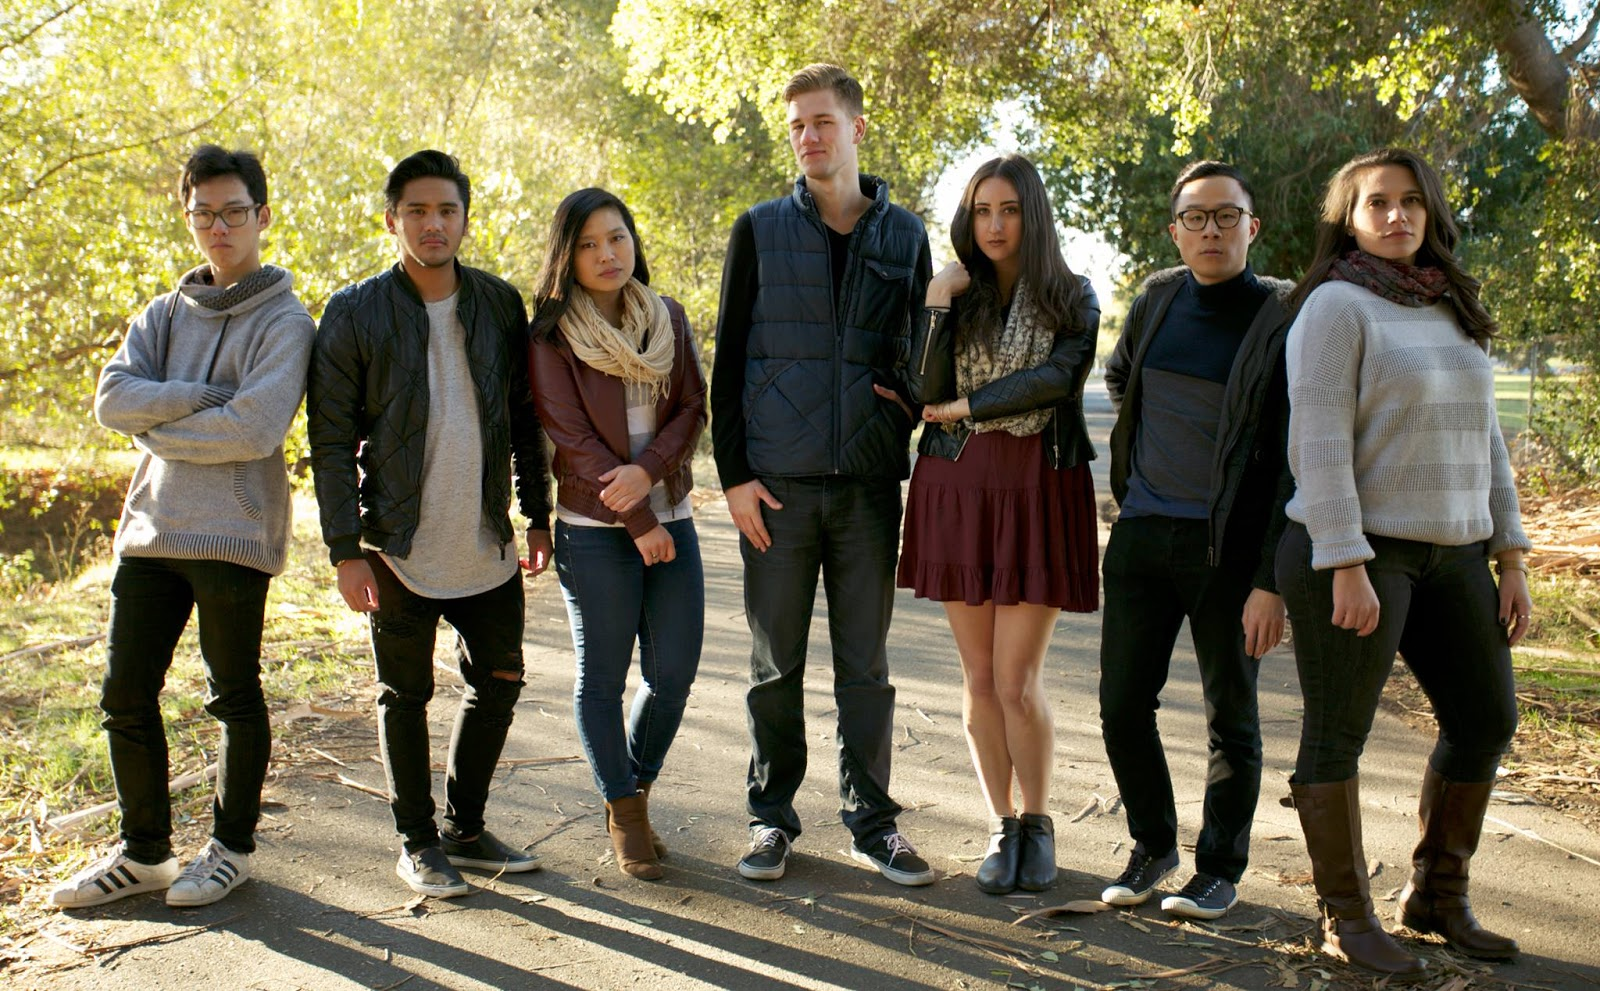 Top Songs of 2015 - A Cappella Medley/Mashup | Rosendale Writes